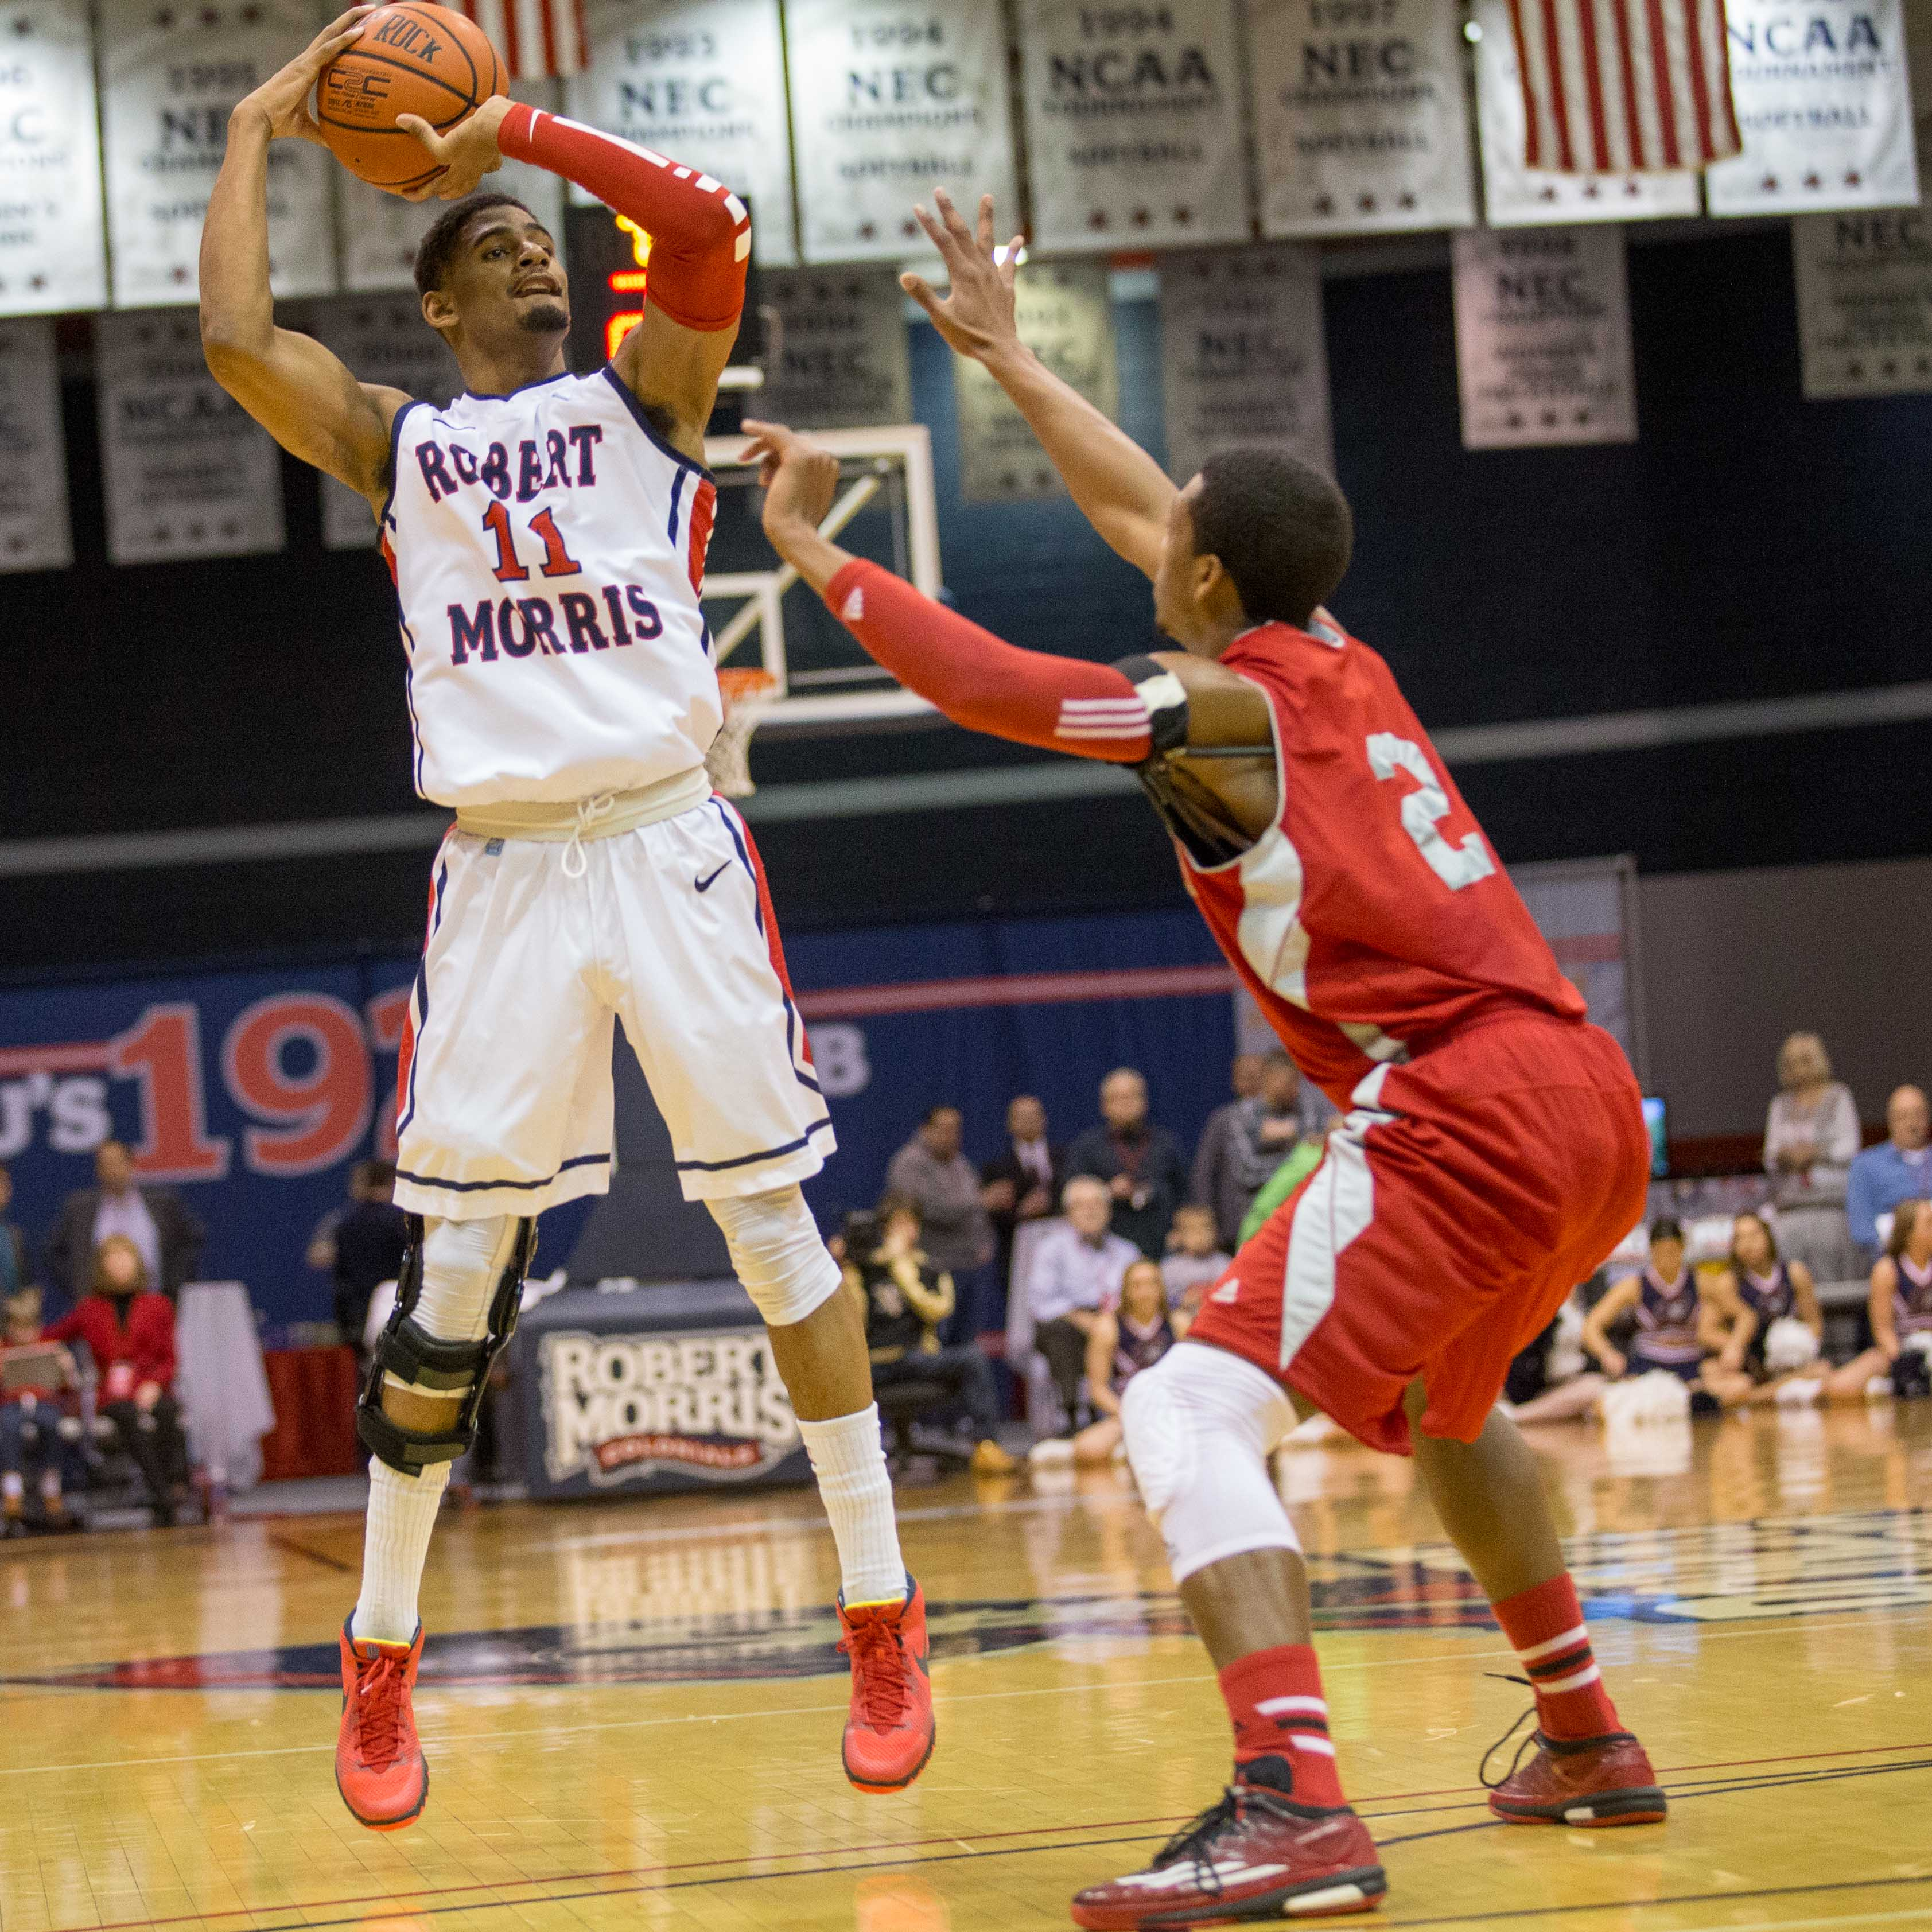 Rodney Pryor supplied 15 points for the Colonials.